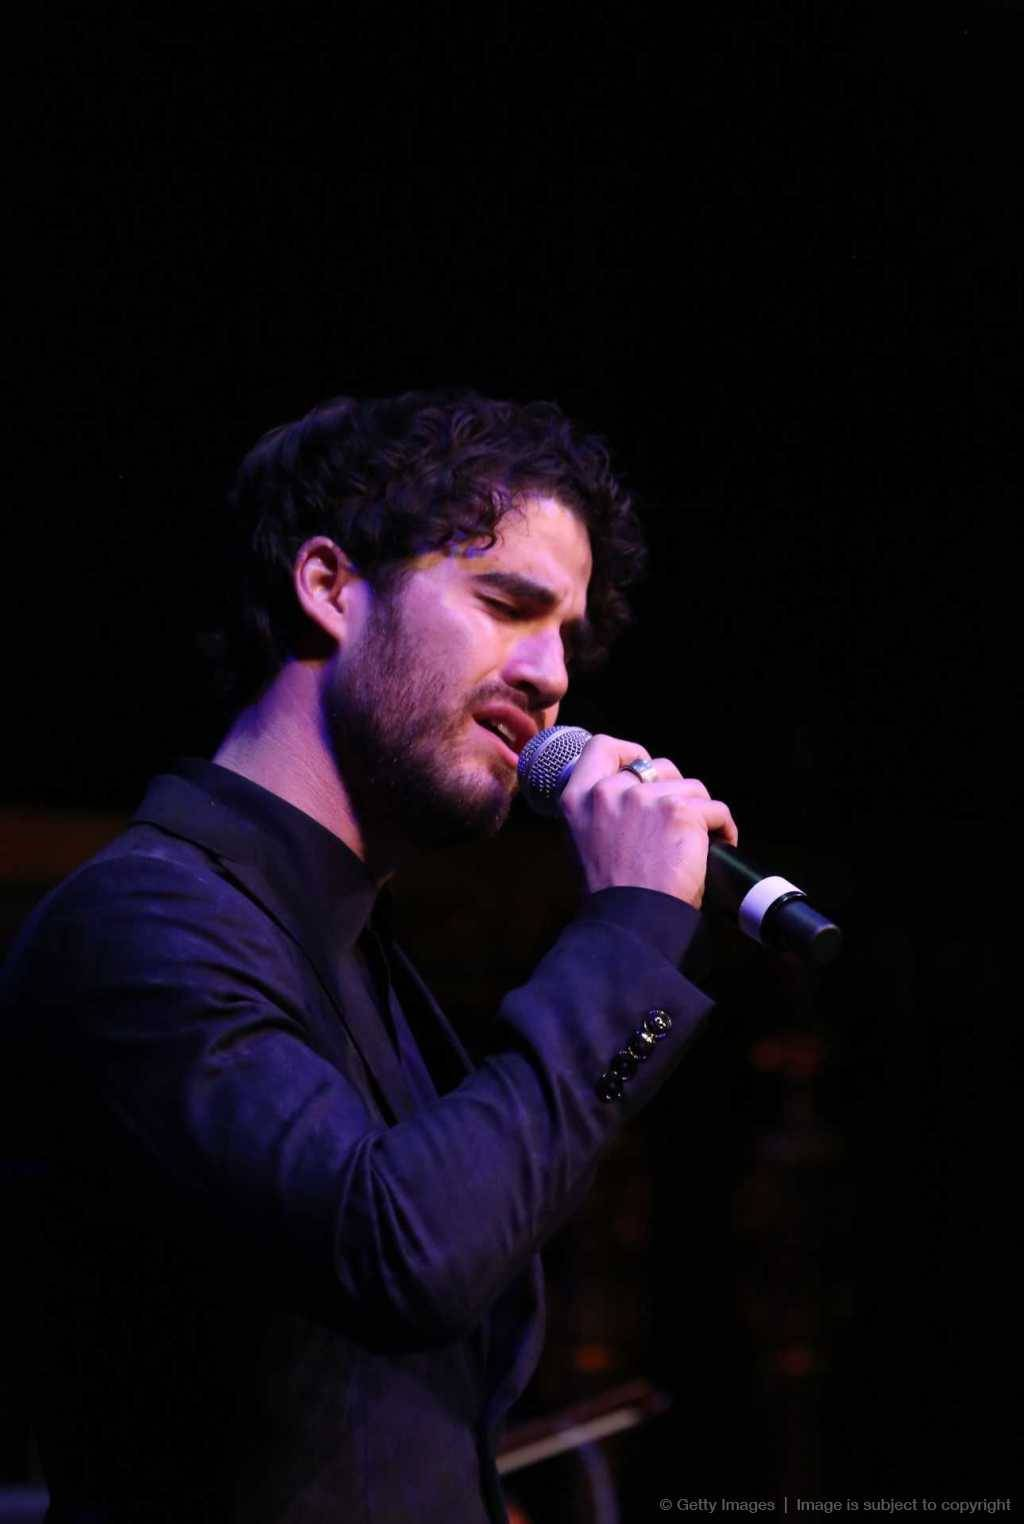 concert - Some of my favorite past photos/gifs of Darren Tumblr_nww2g3gxw51r4gxc3o1_1280